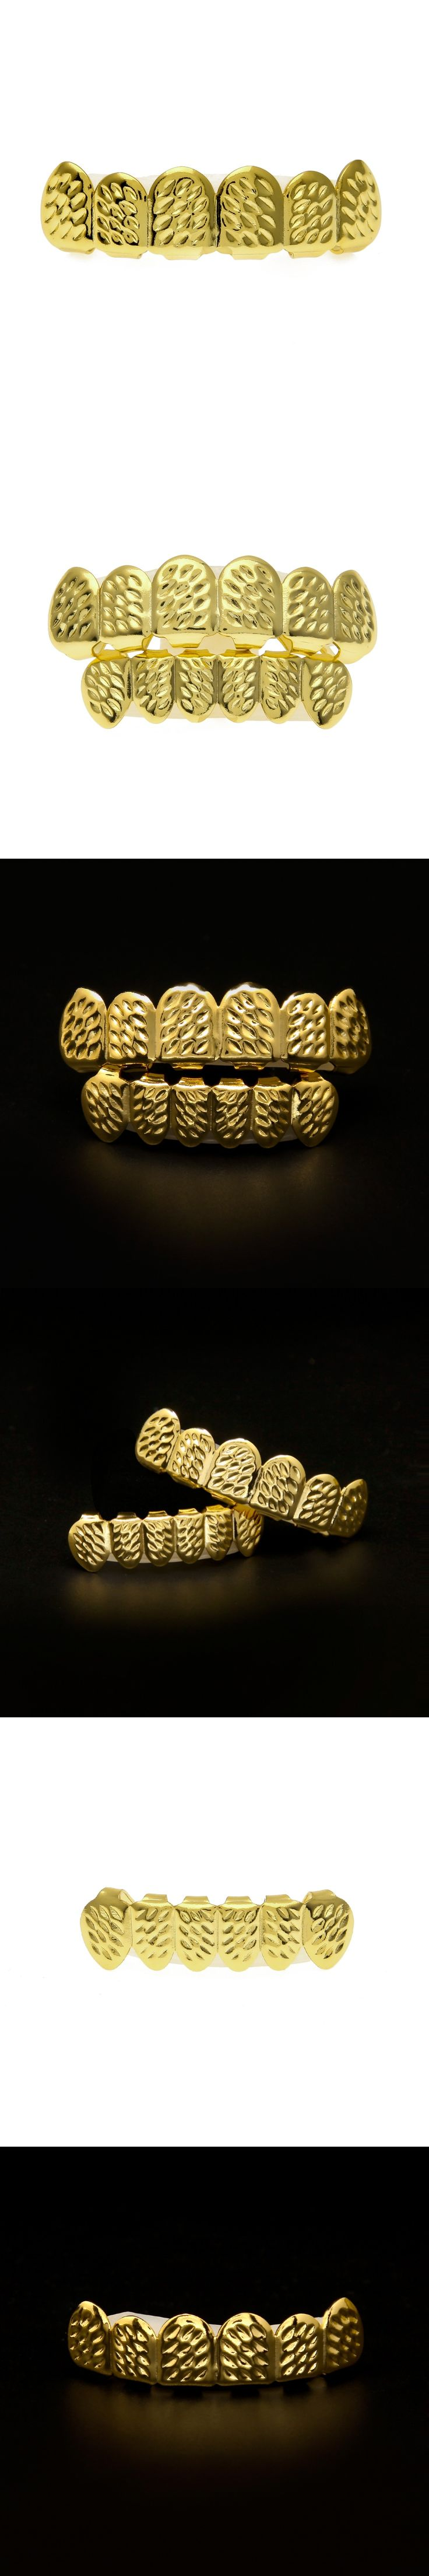 shunyun High Quality Gold Hip Hop Teeth Grillz Caps Top Bottom Grill for Halloween Party Fit Mouth Cheap Grillz Drop Shipping